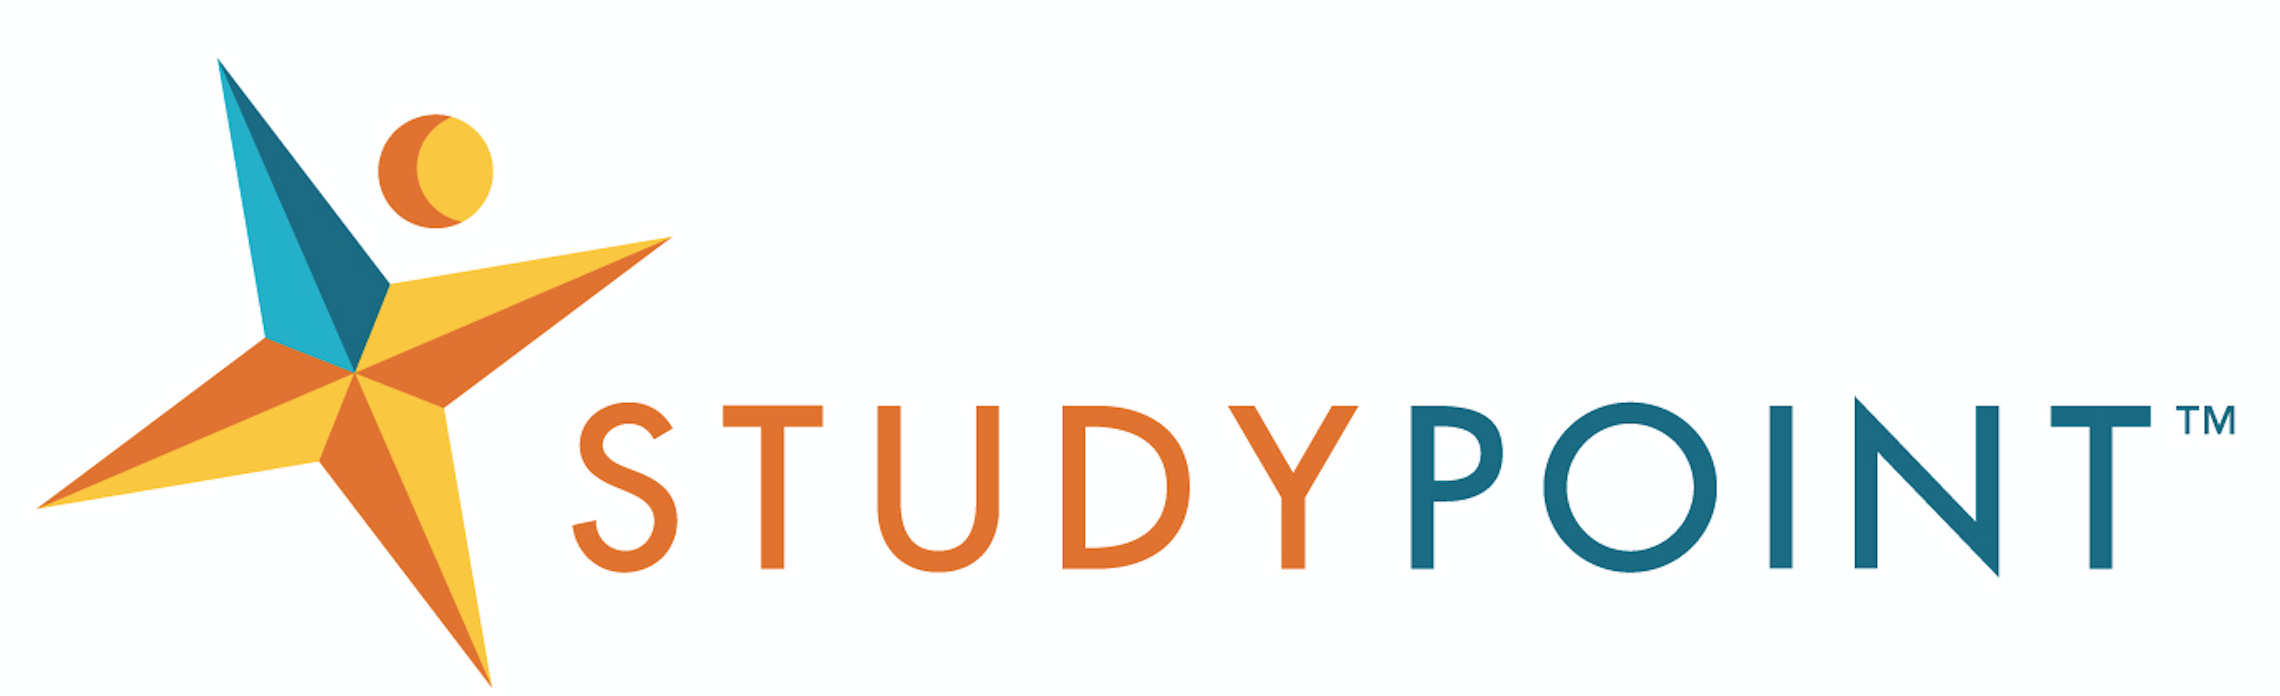 StudyPoint logo